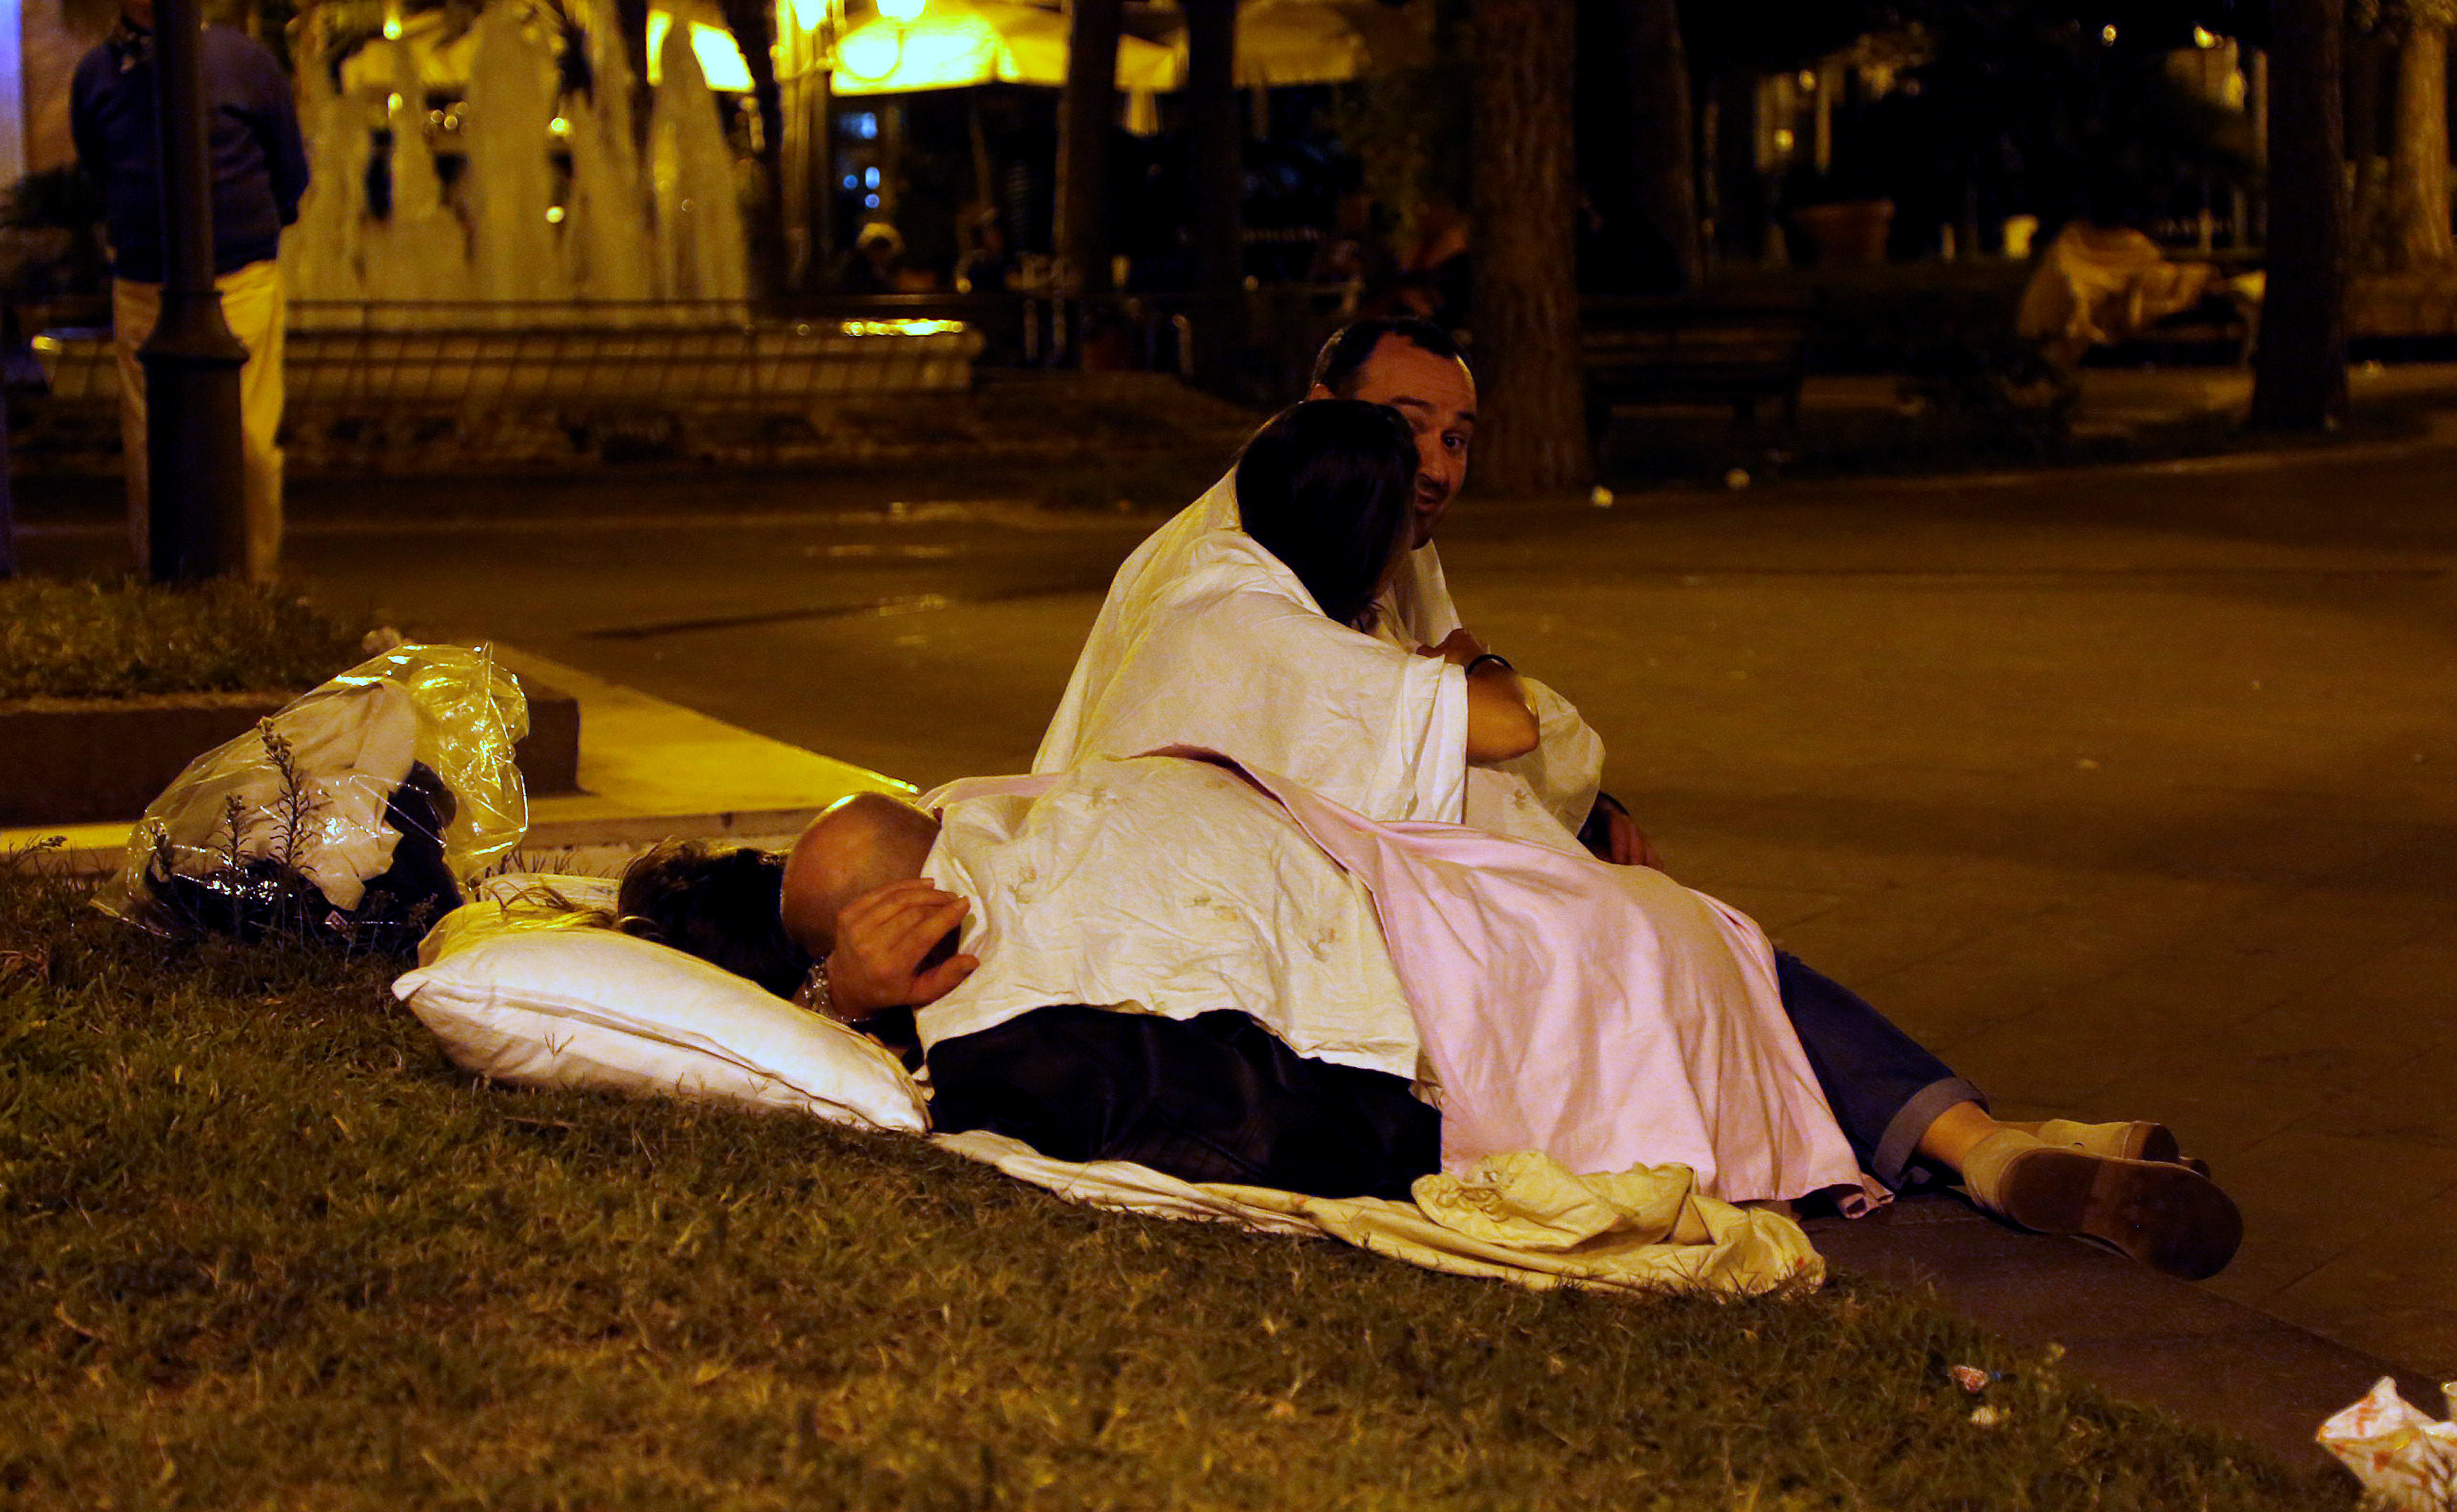 People sleep in the street on early morning after an earthquake hit the island of Ischia, off the coast of Naples, Italy on August 22, 2017. (REUTERS/Ciro De Luca)